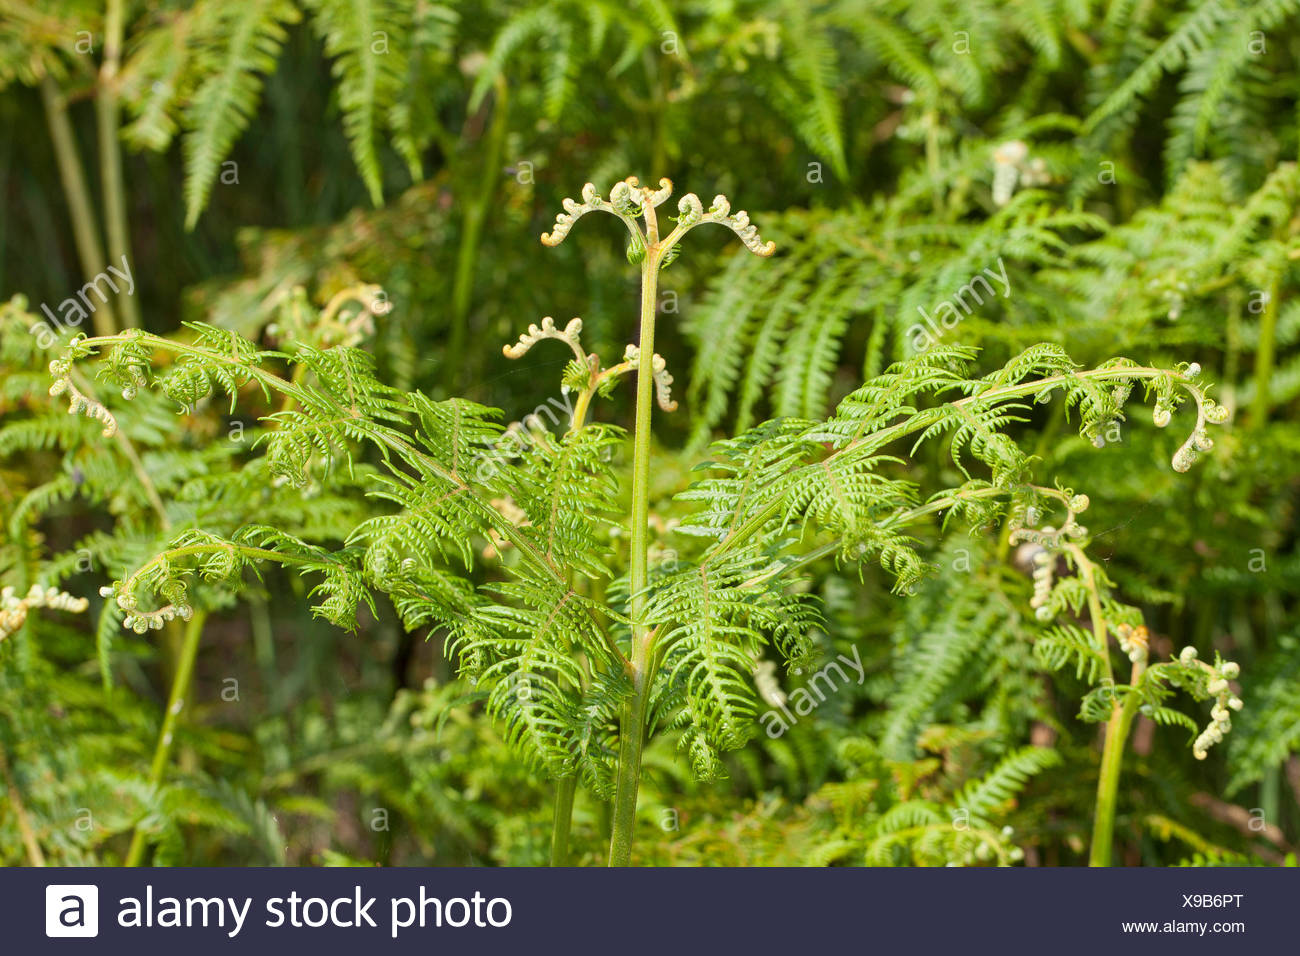 bracken fern (Pteridium aquilinum), developing leaf, Germany - Stock Image